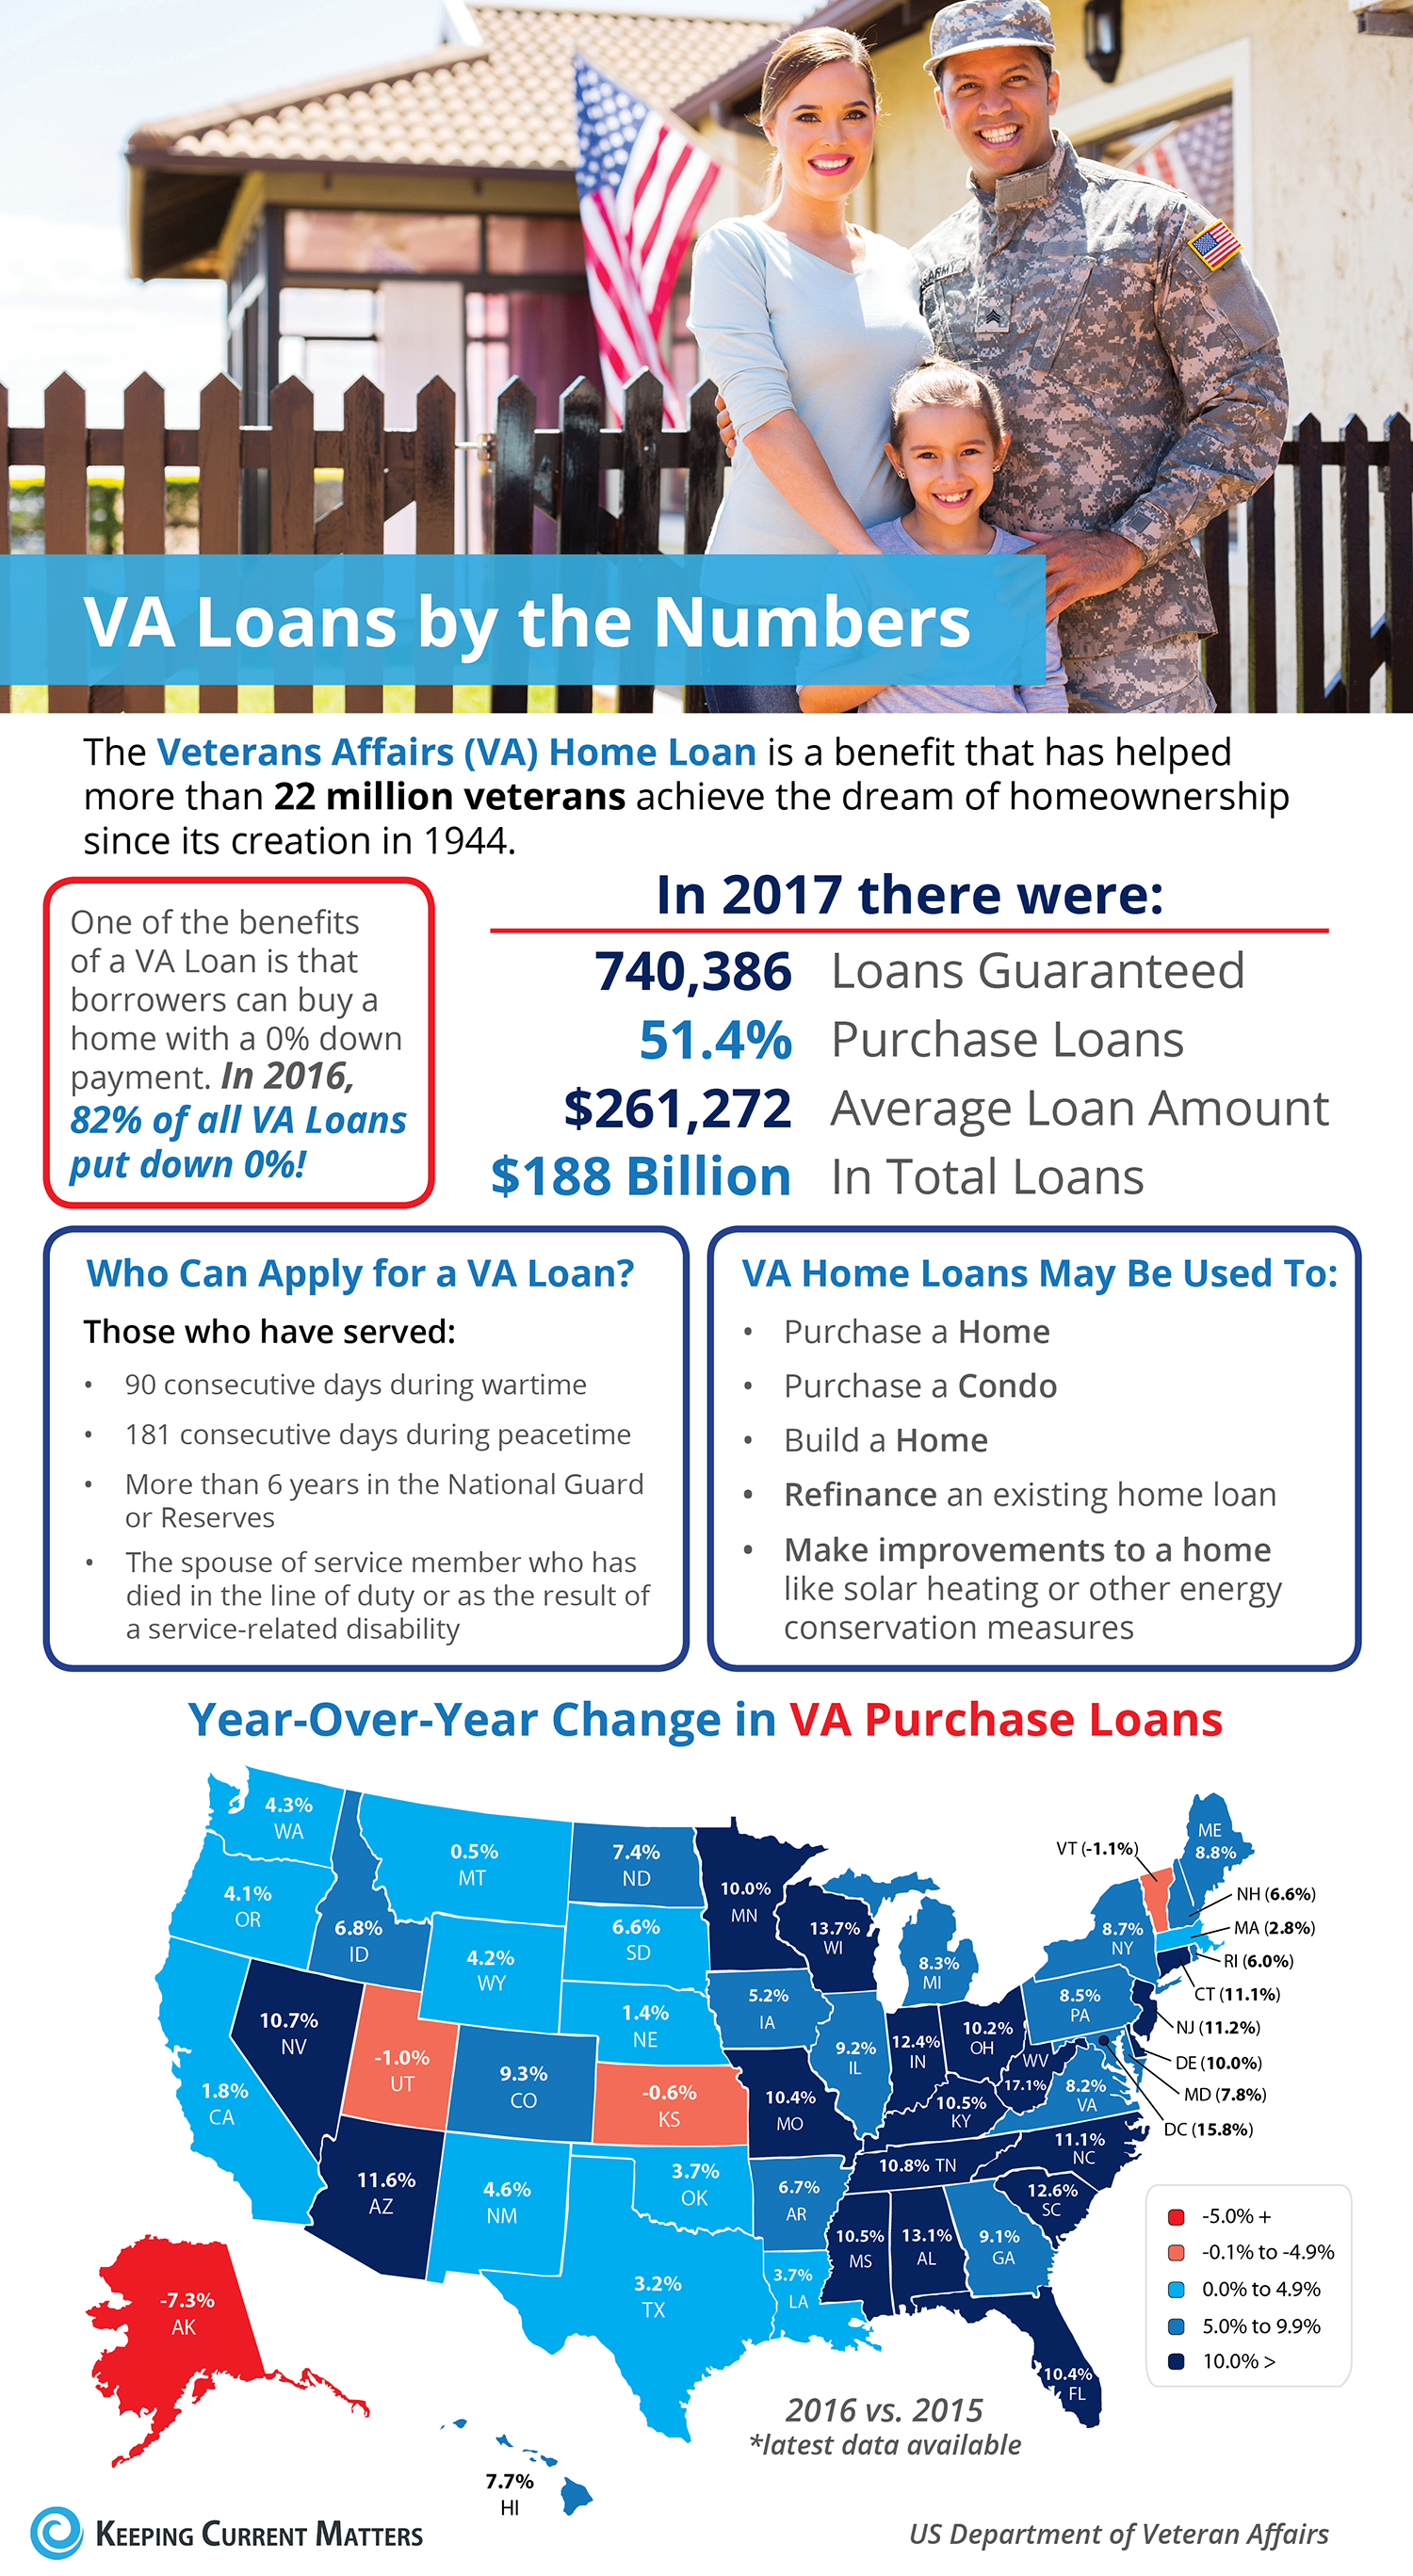 VA Loans by the Numbers [INFOGRAPHIC] | Keeping Current Matters